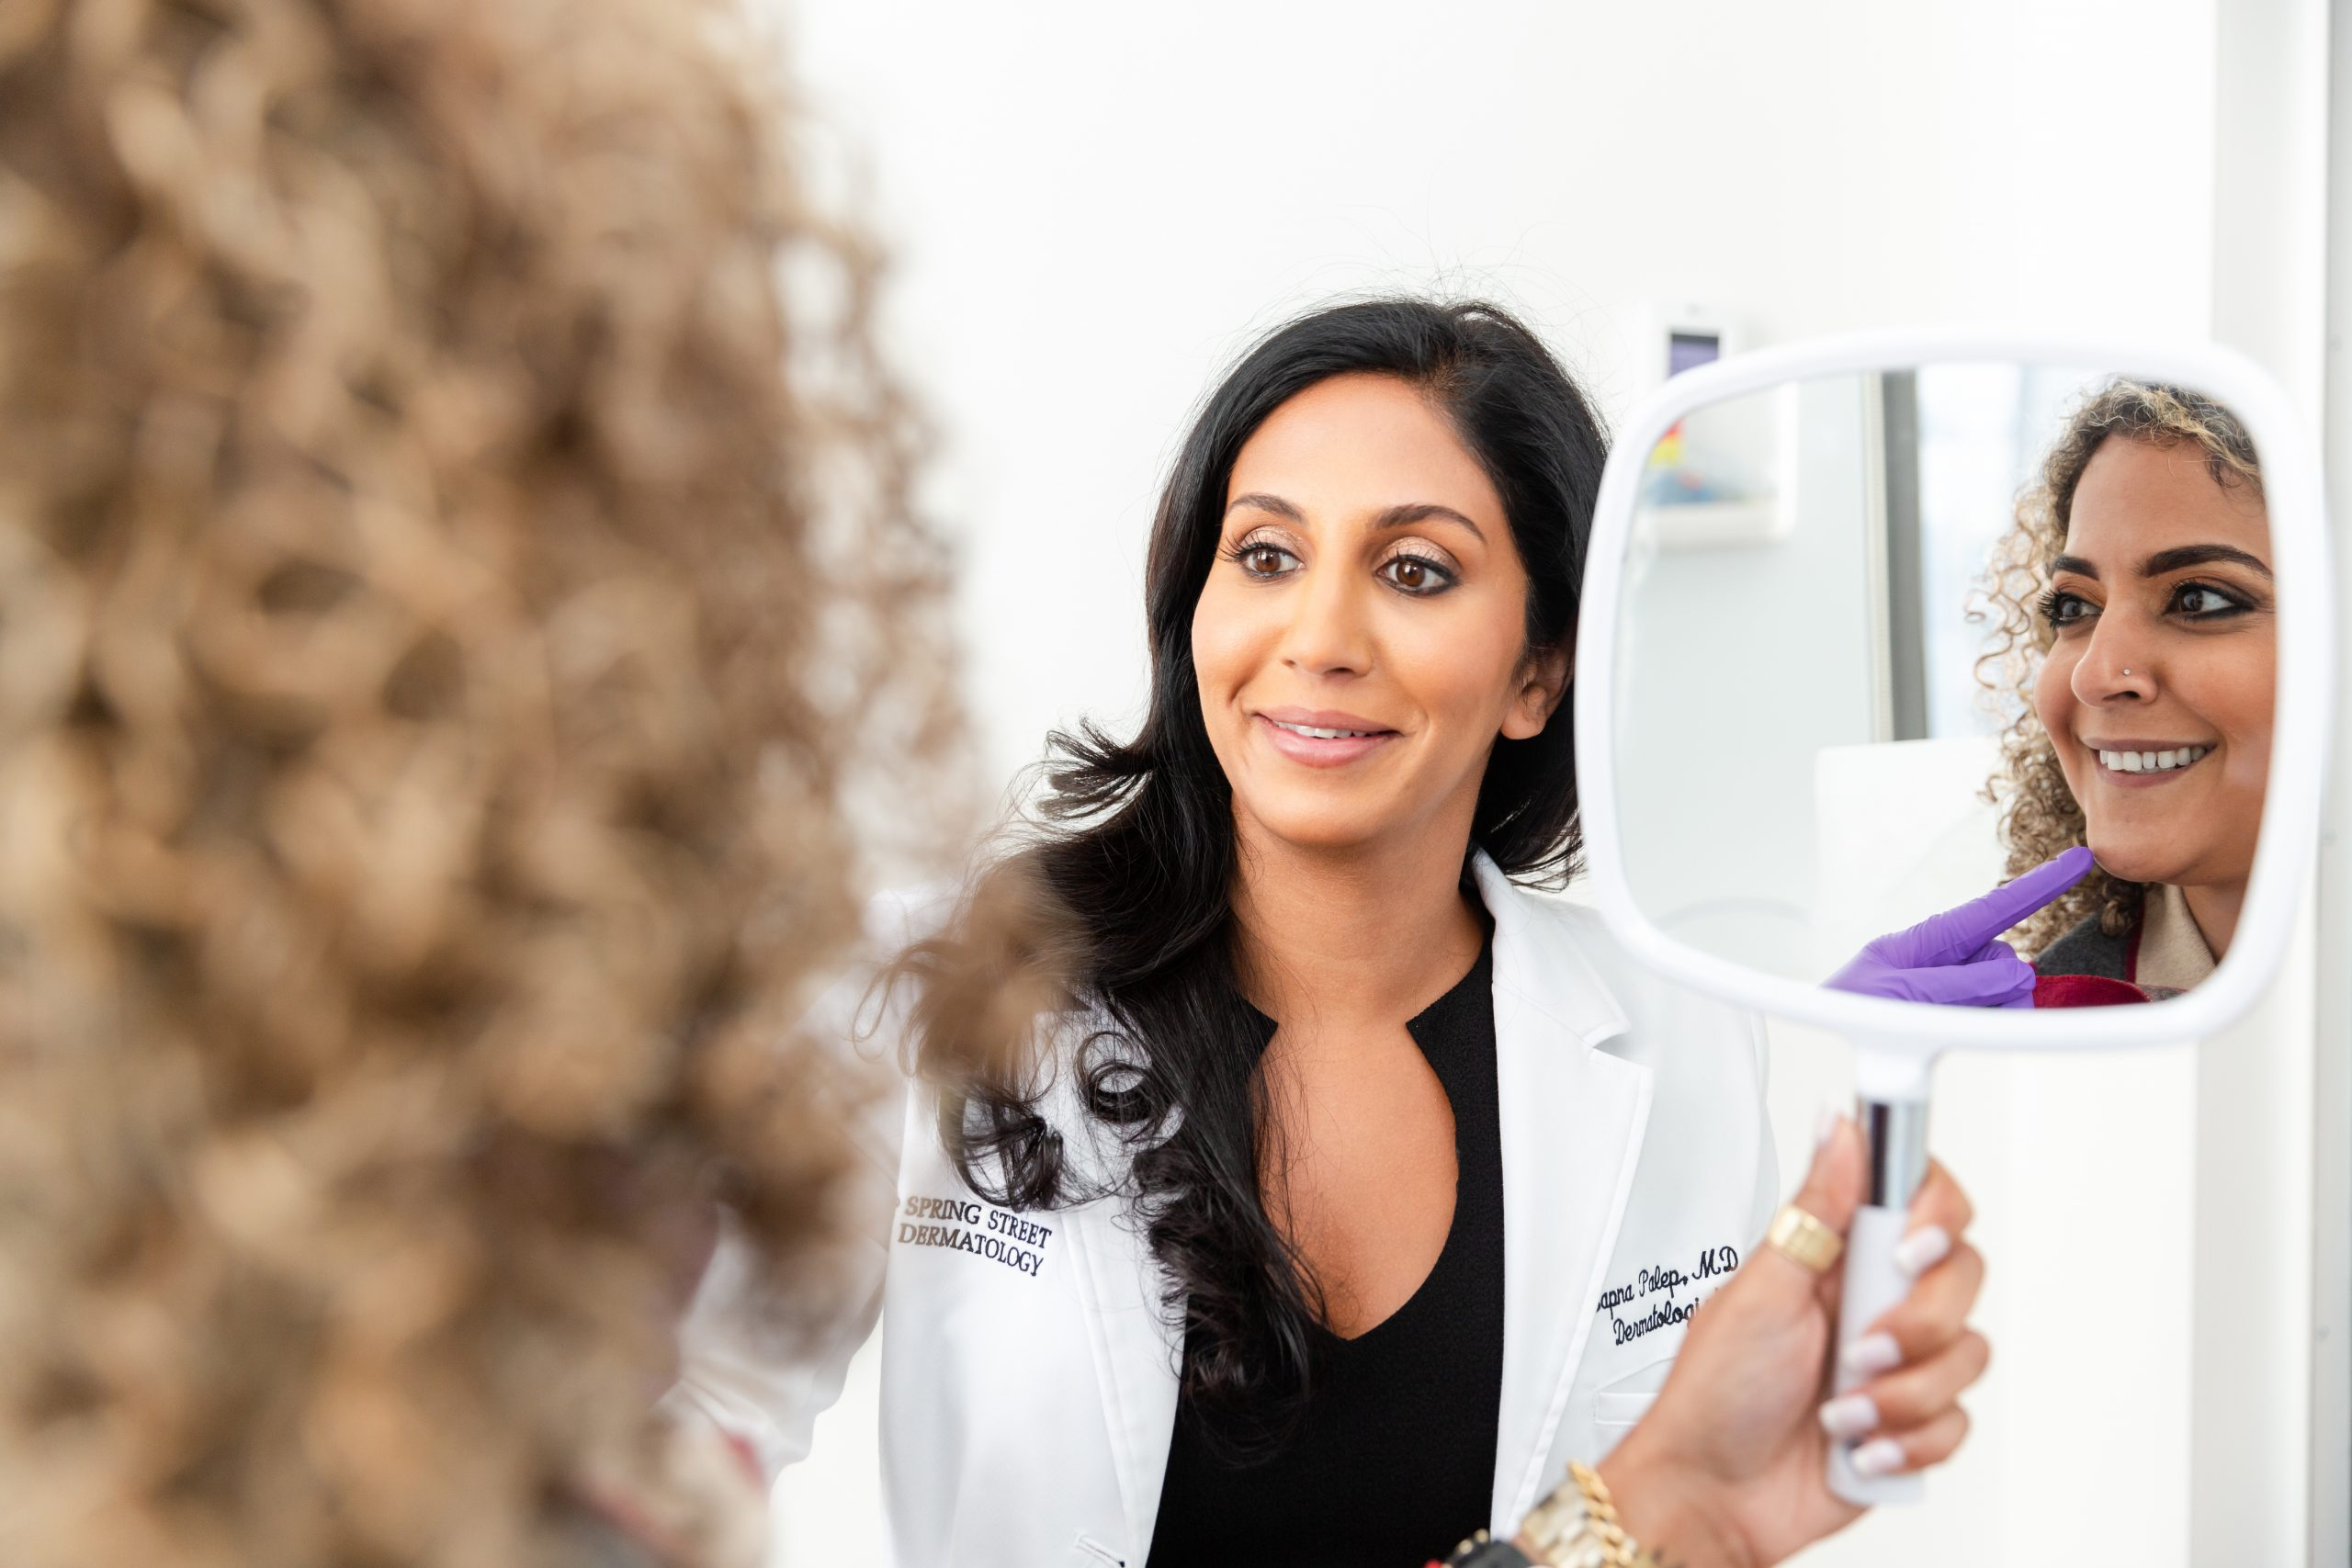 Board Certified Dermatologist Dr. Sapna Palep letting her patient see the results in the mirror, rosacea treatment in New York, NY.